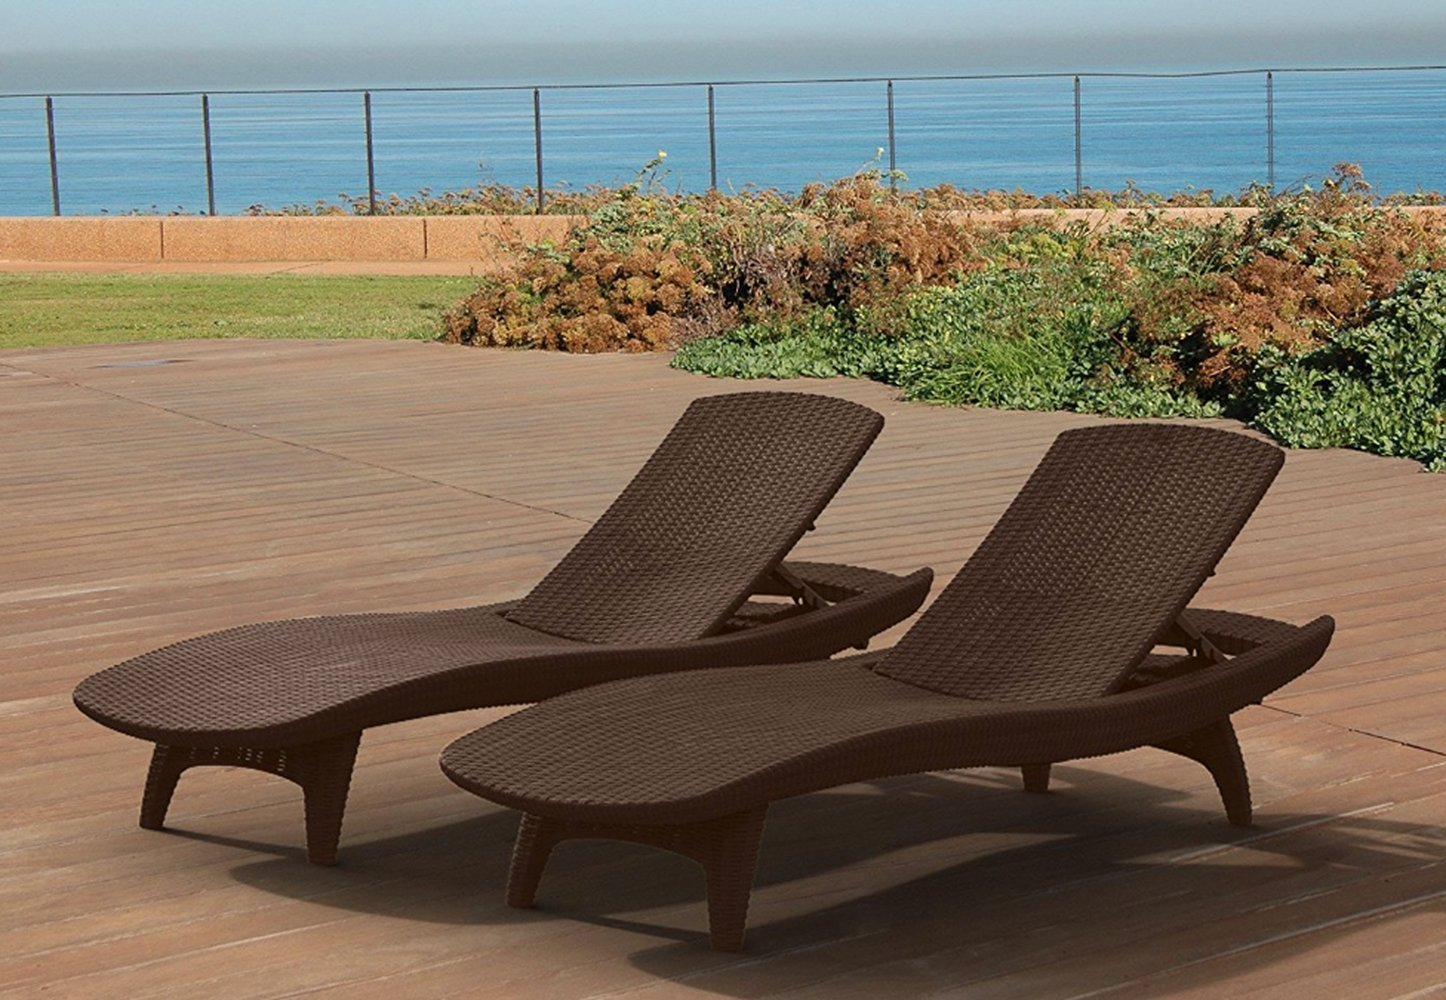 Patterned Chaise Lounge, Resin Material, Whiskey Brown Color, Set Of 2 Pieces, Ideal For Outdoor Spaces, Resistant To Weather Conditions, Stylish Design, Sturdy And Durable Construction & E-Book